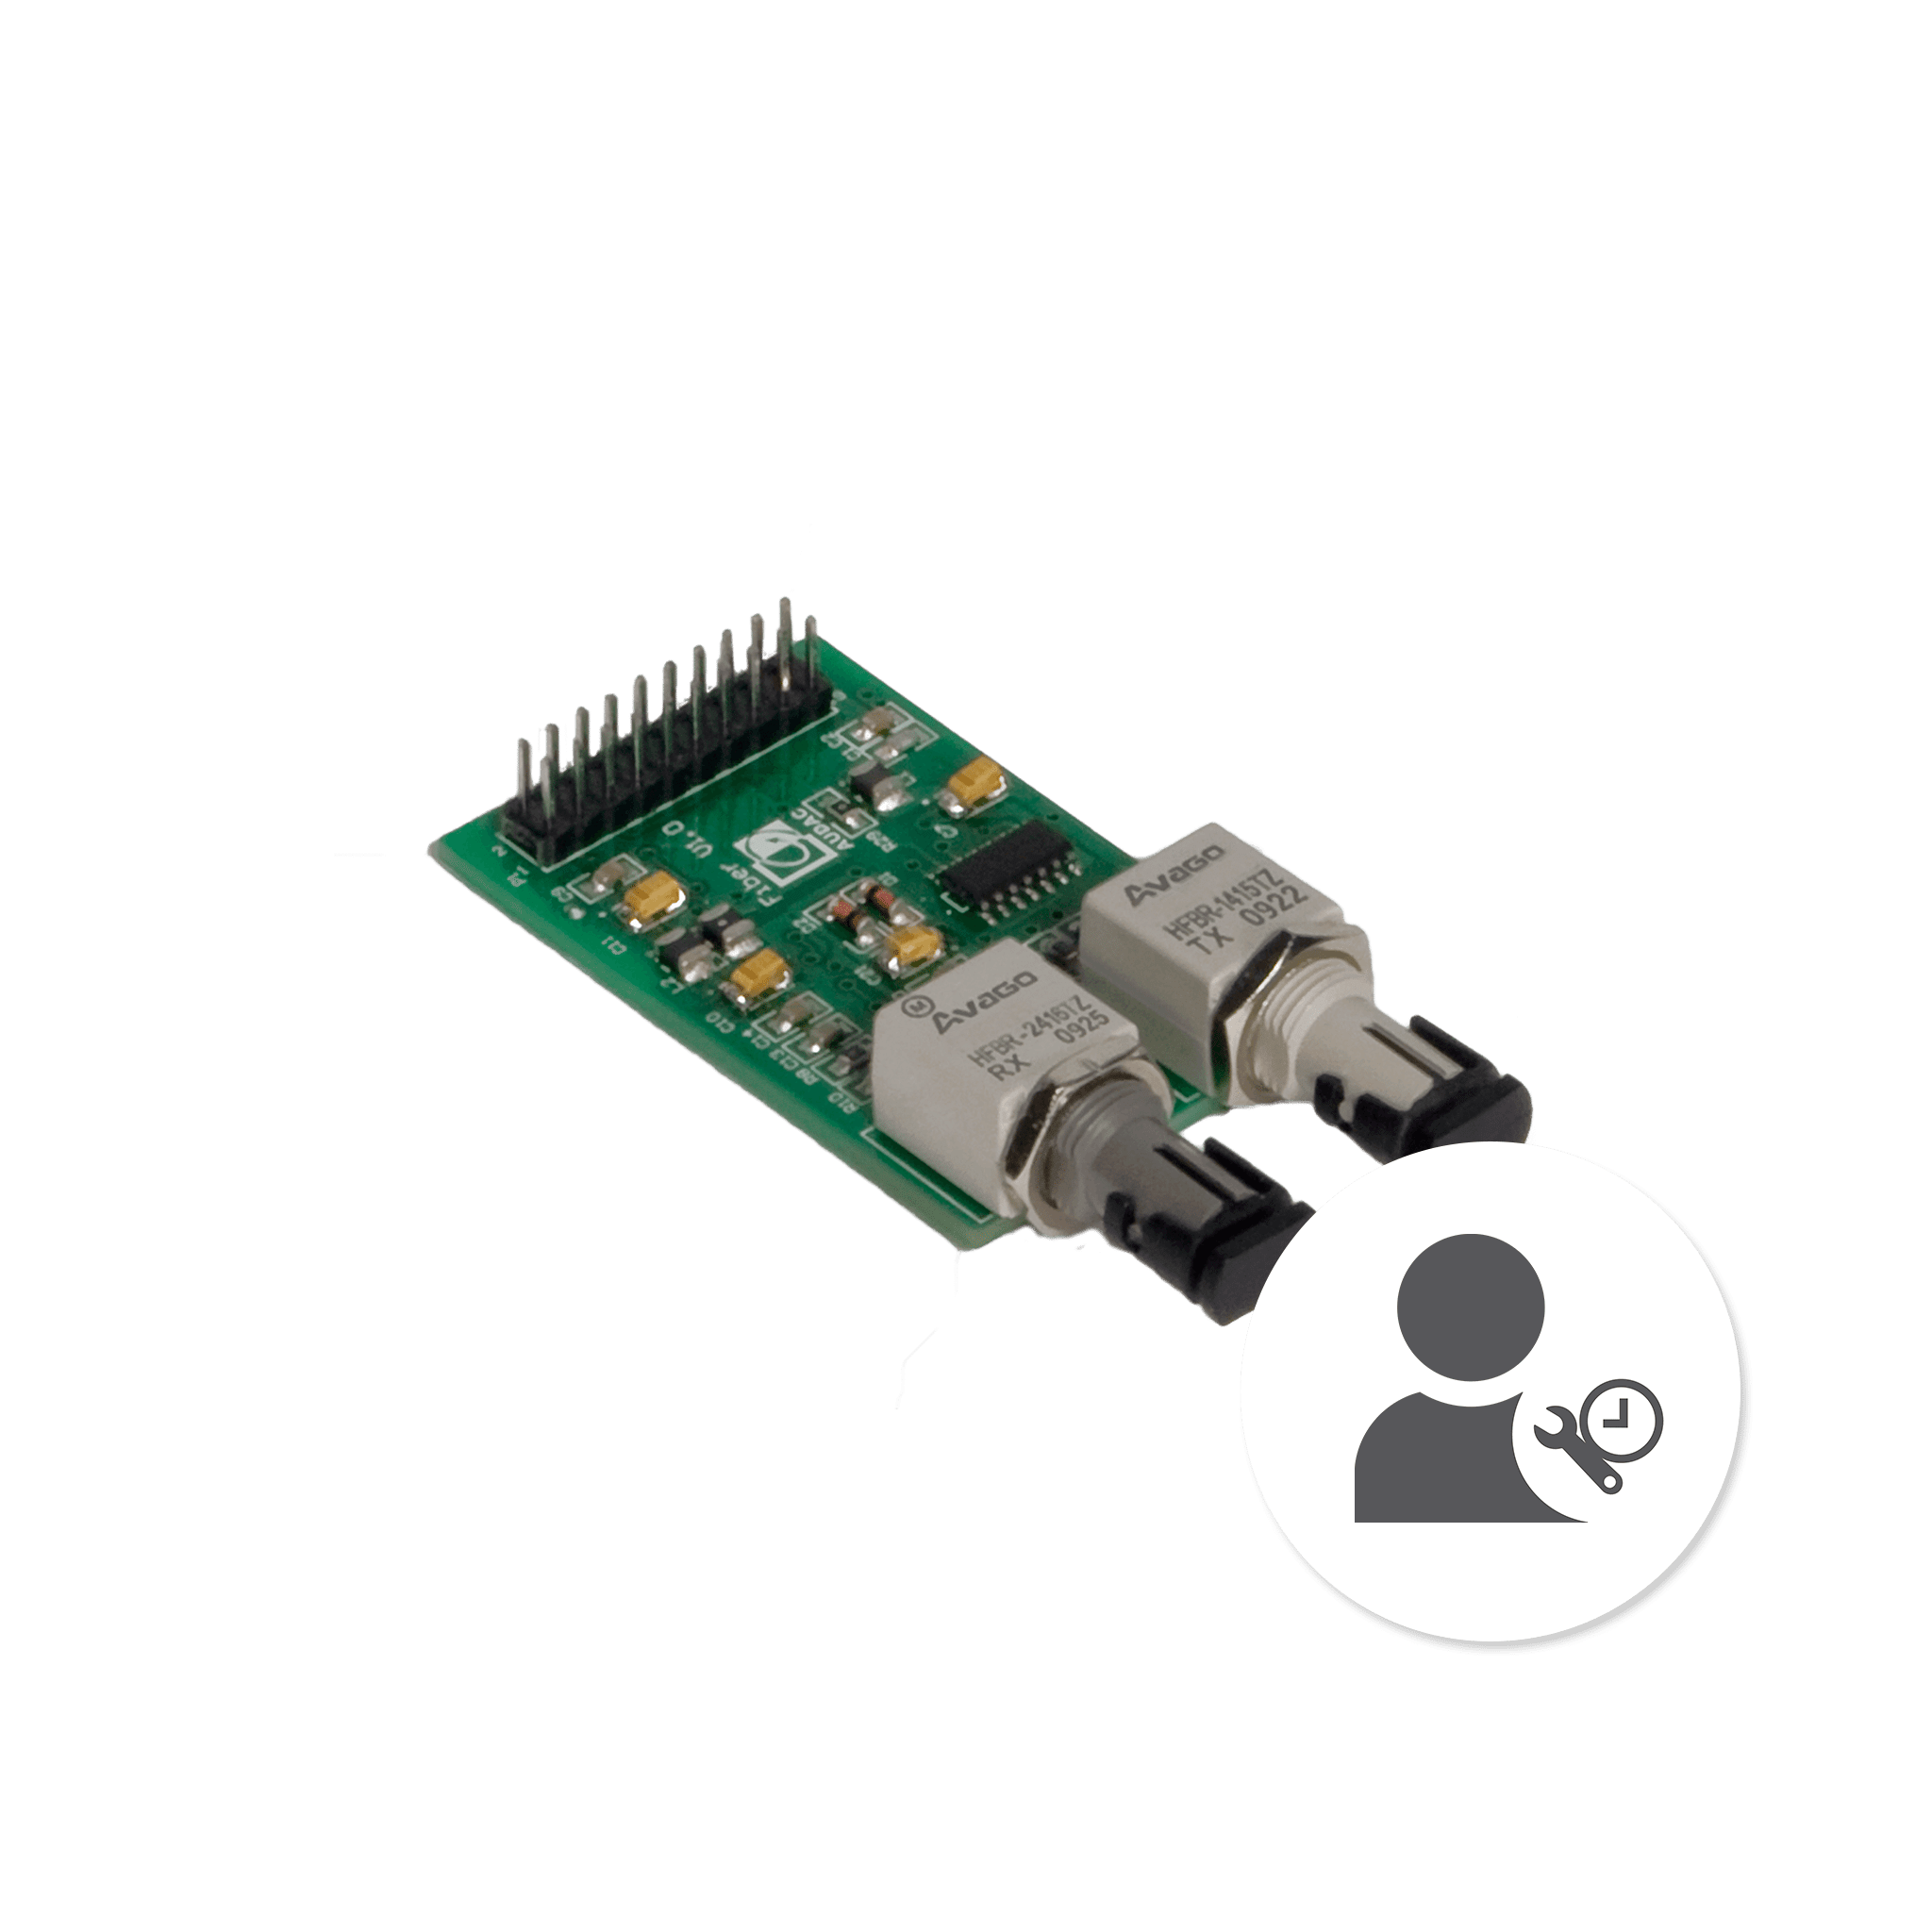 WORKOPT2 - Installation of the OPT2 module in an M2 or R2 matrix system